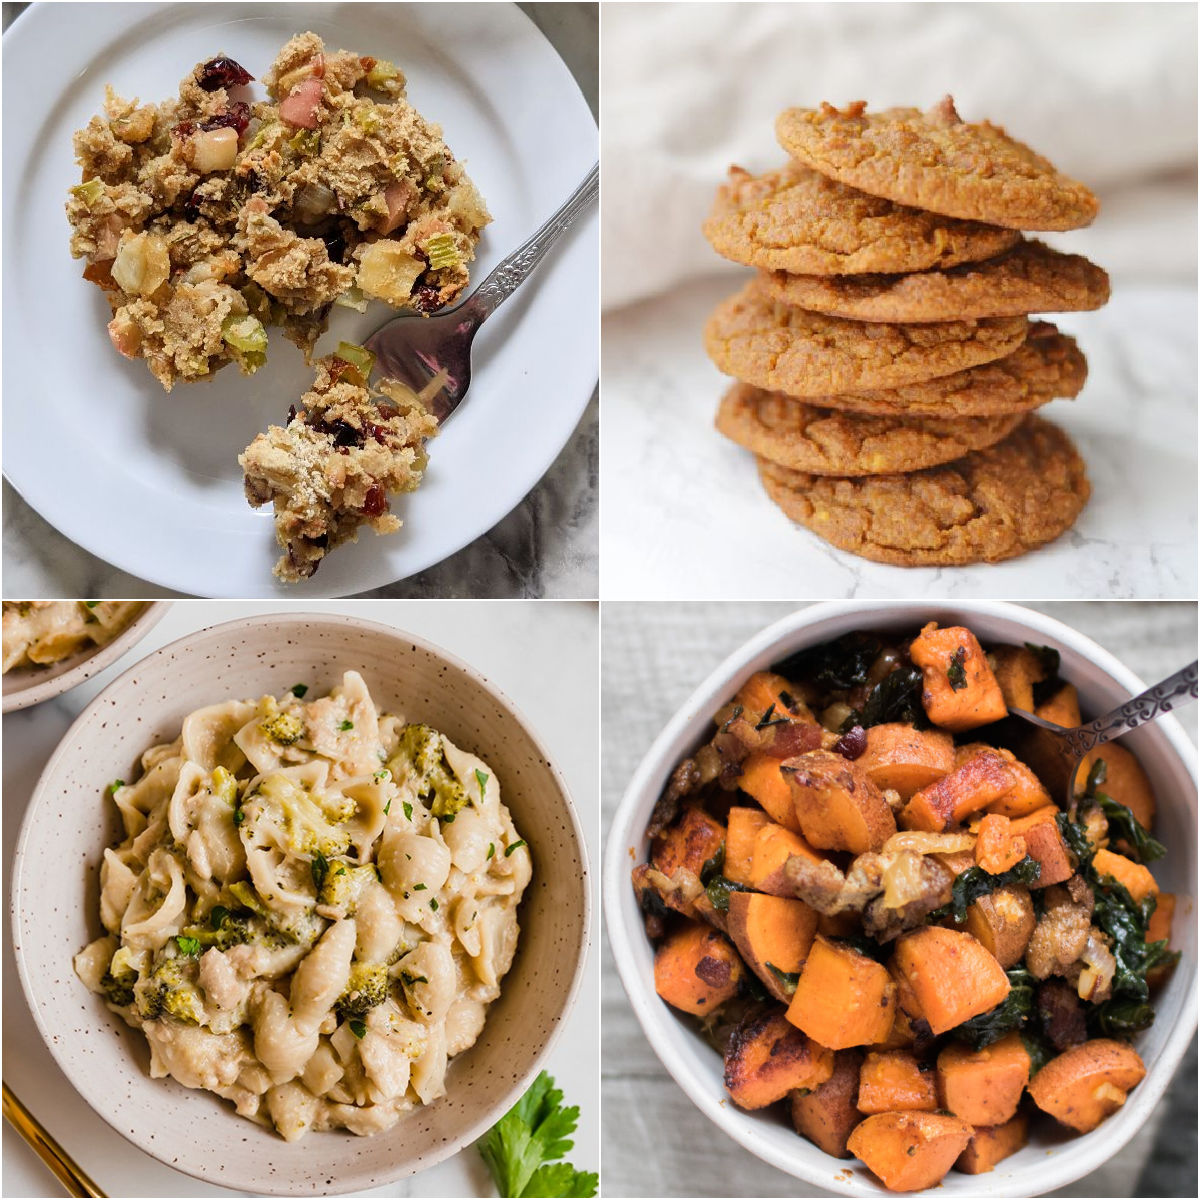 Paleo AIP Recipe Roundtable #342 | Phoenix Helix - *Featured Recipes: AIP Bread Stuffing, Tuna Noodle Casserole, Spiced Sweet Potato Cookies, and Sweet Potato, Bacon, & Kale Hash